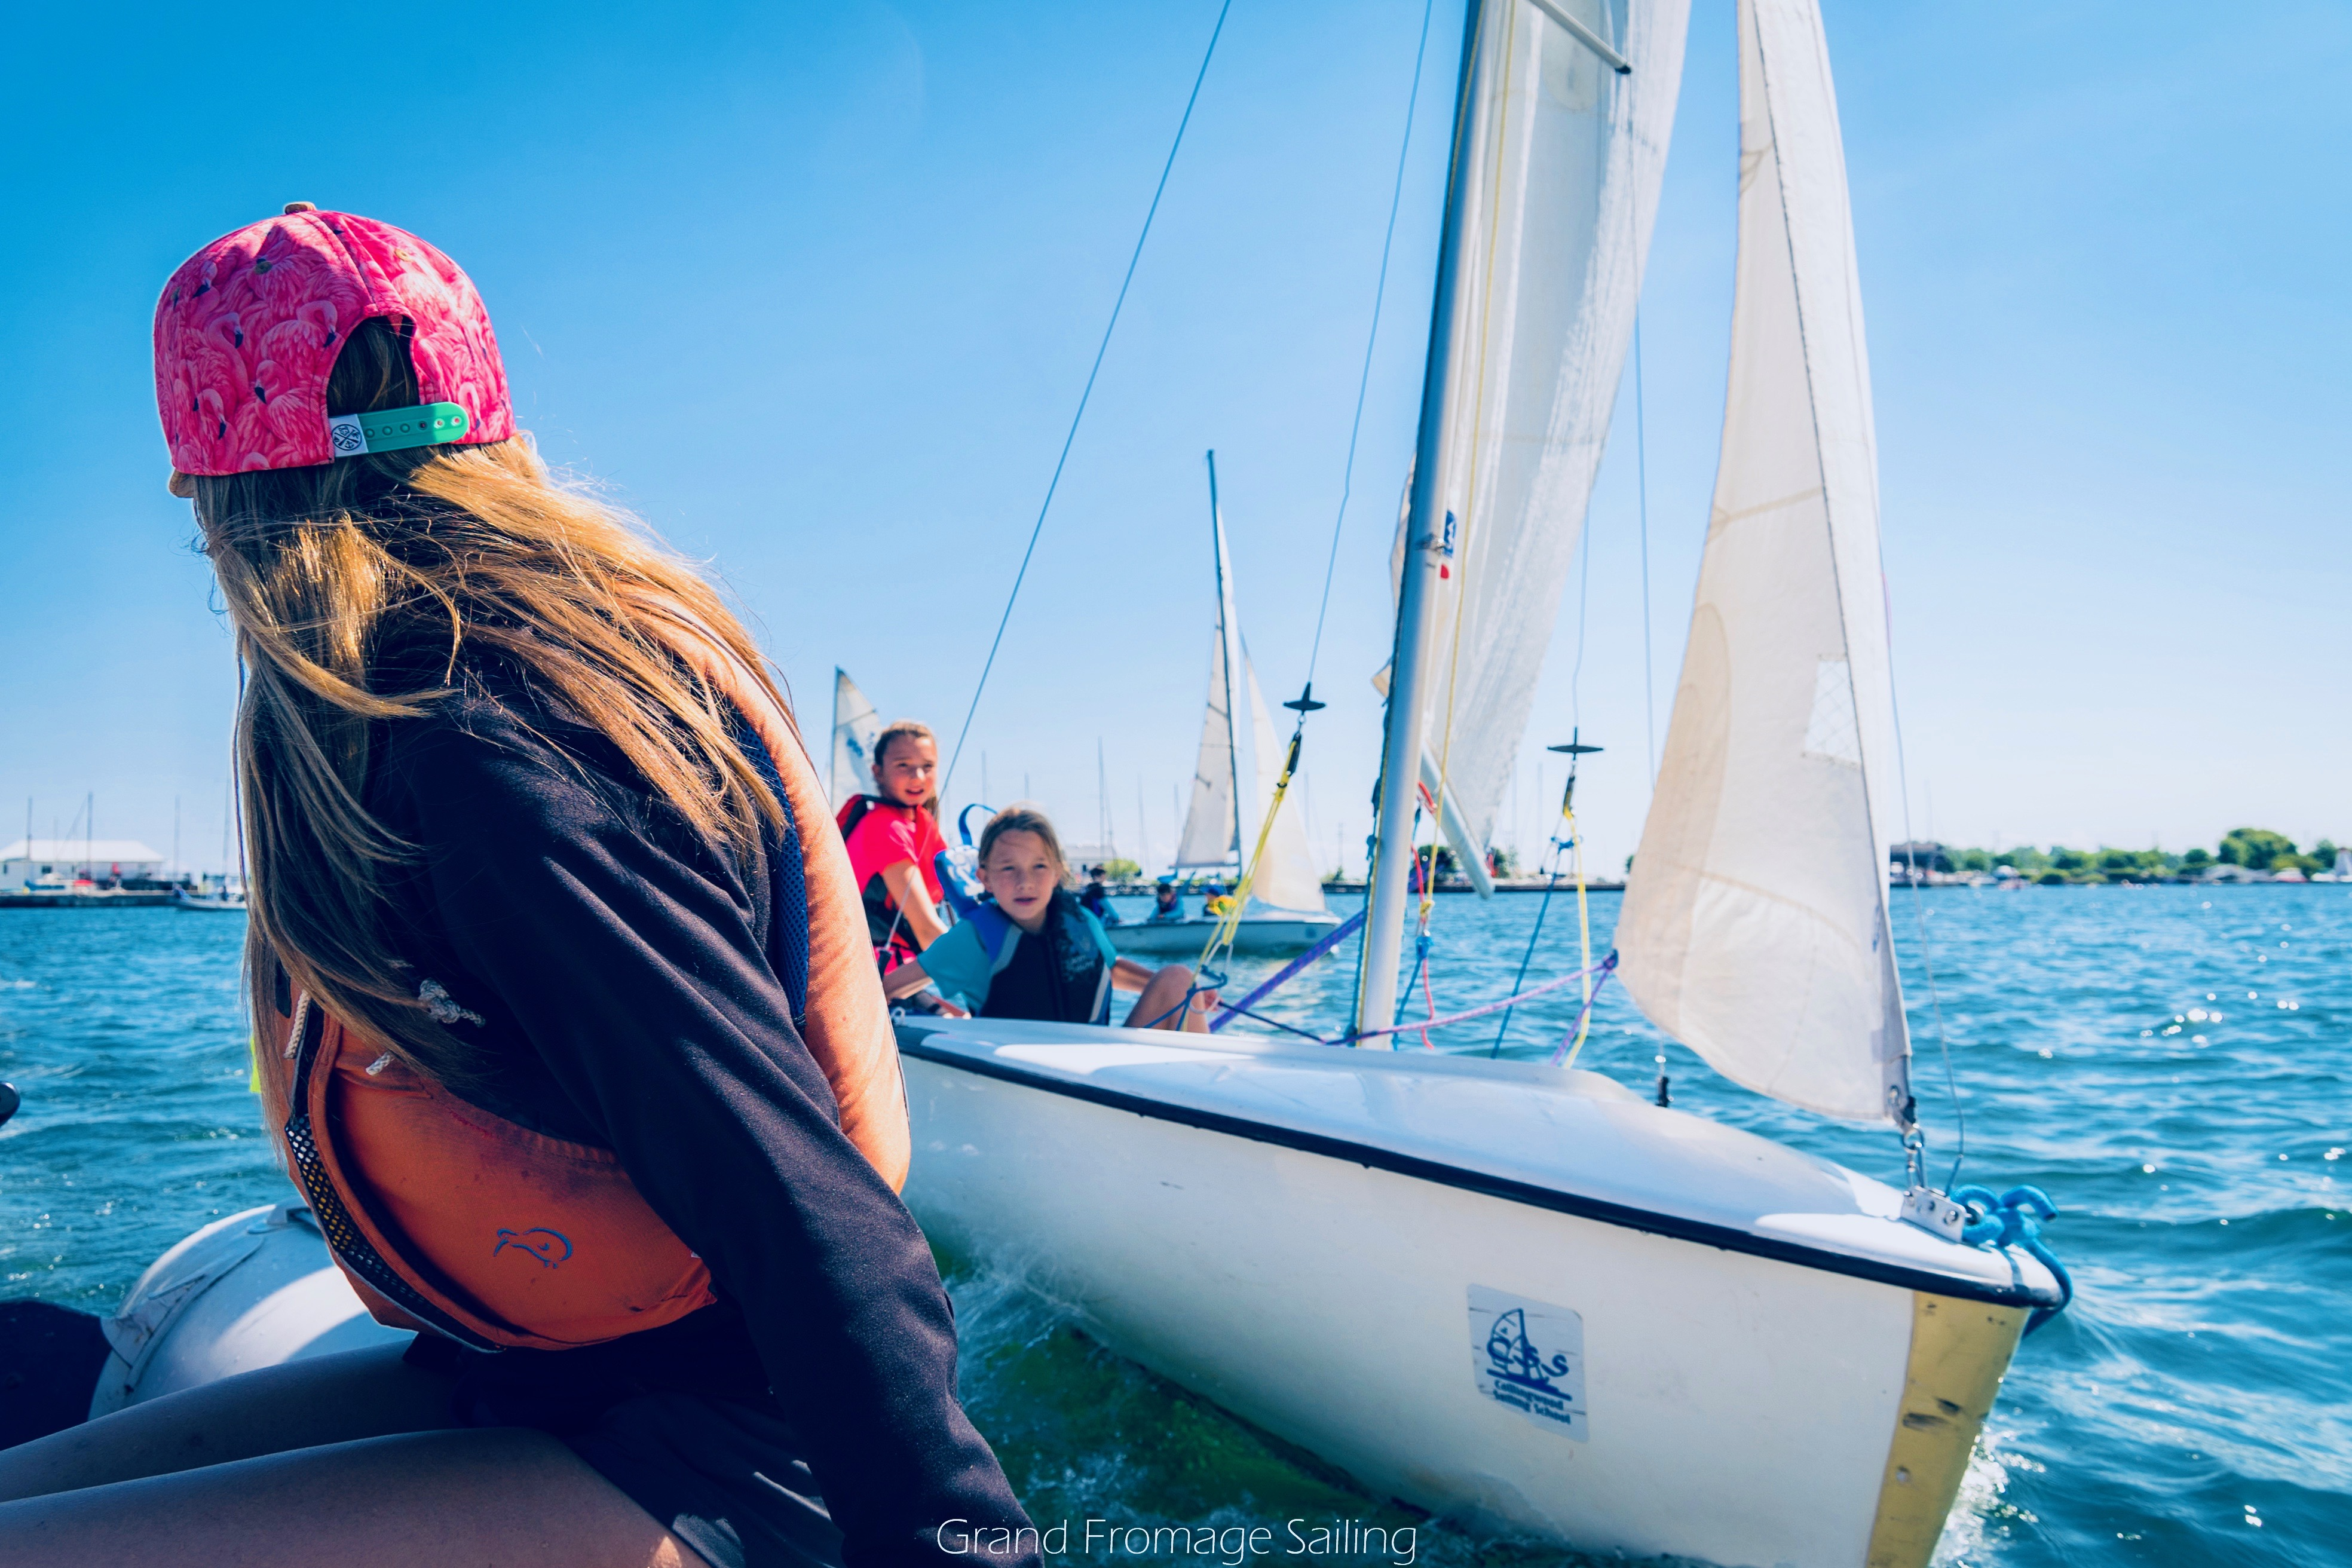 2017 Checklick Annual CANSail Instructor Compensation Survey